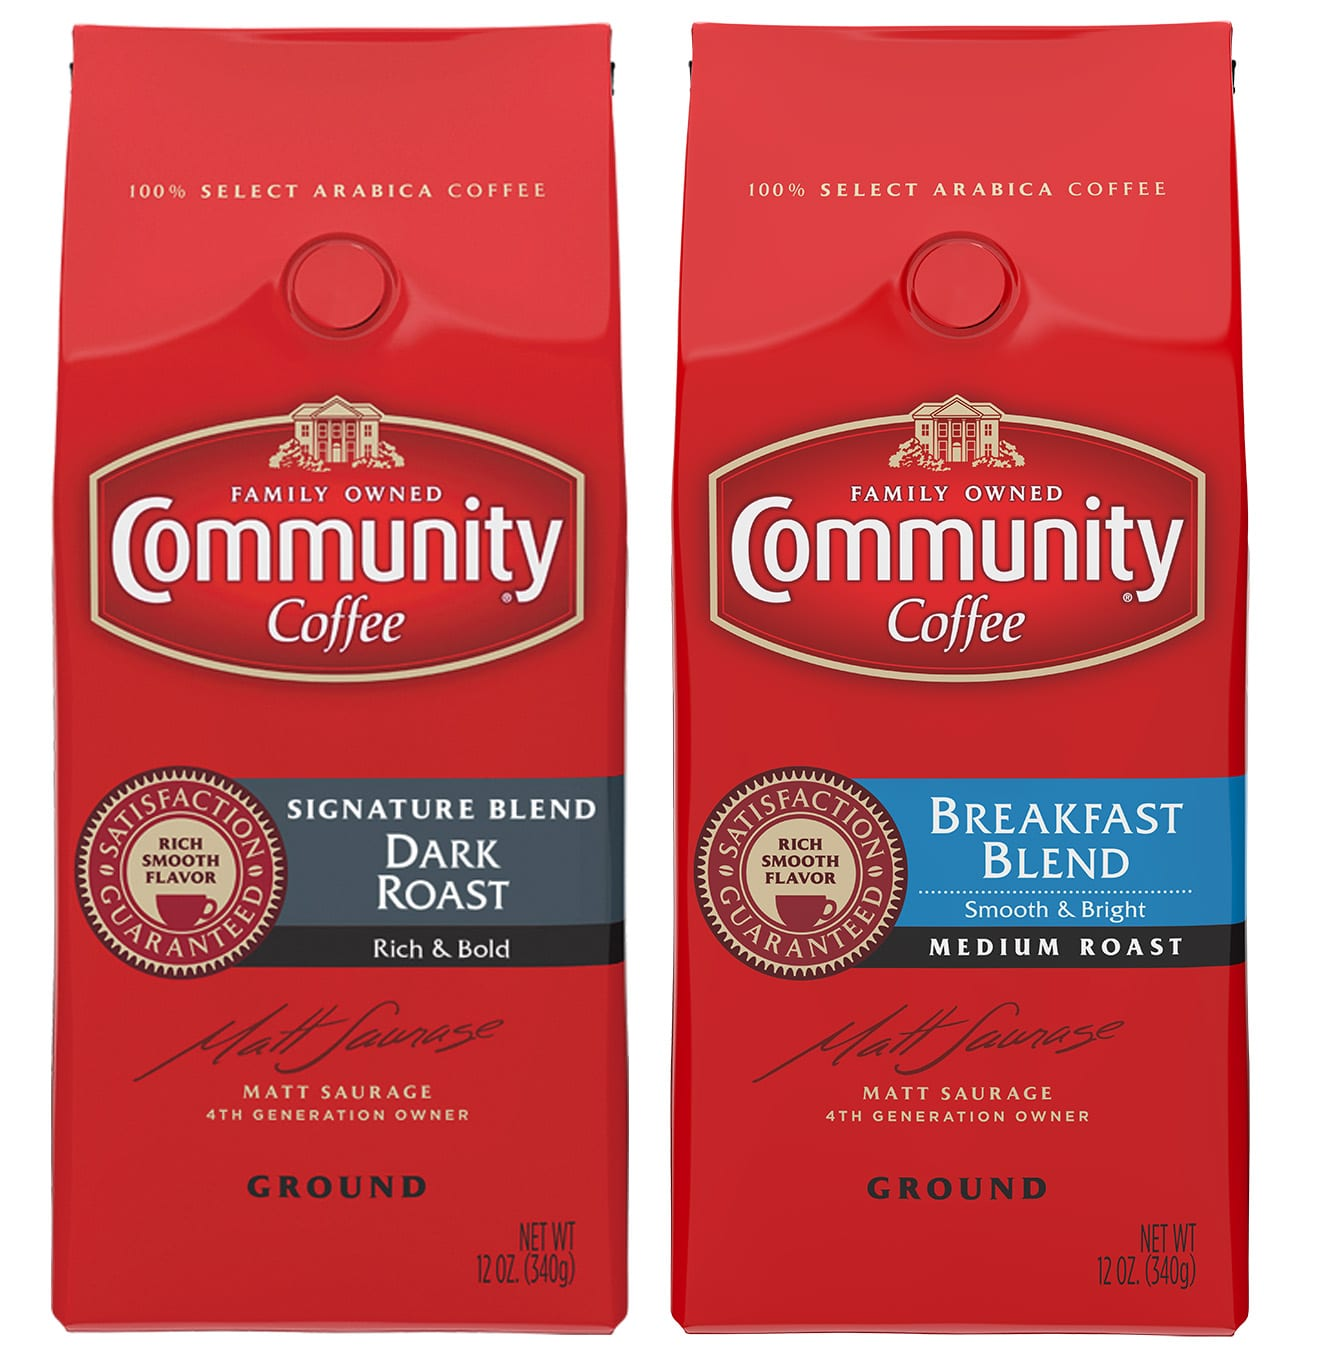 Community Coffee Company Expands to 400 More Kroger Stores